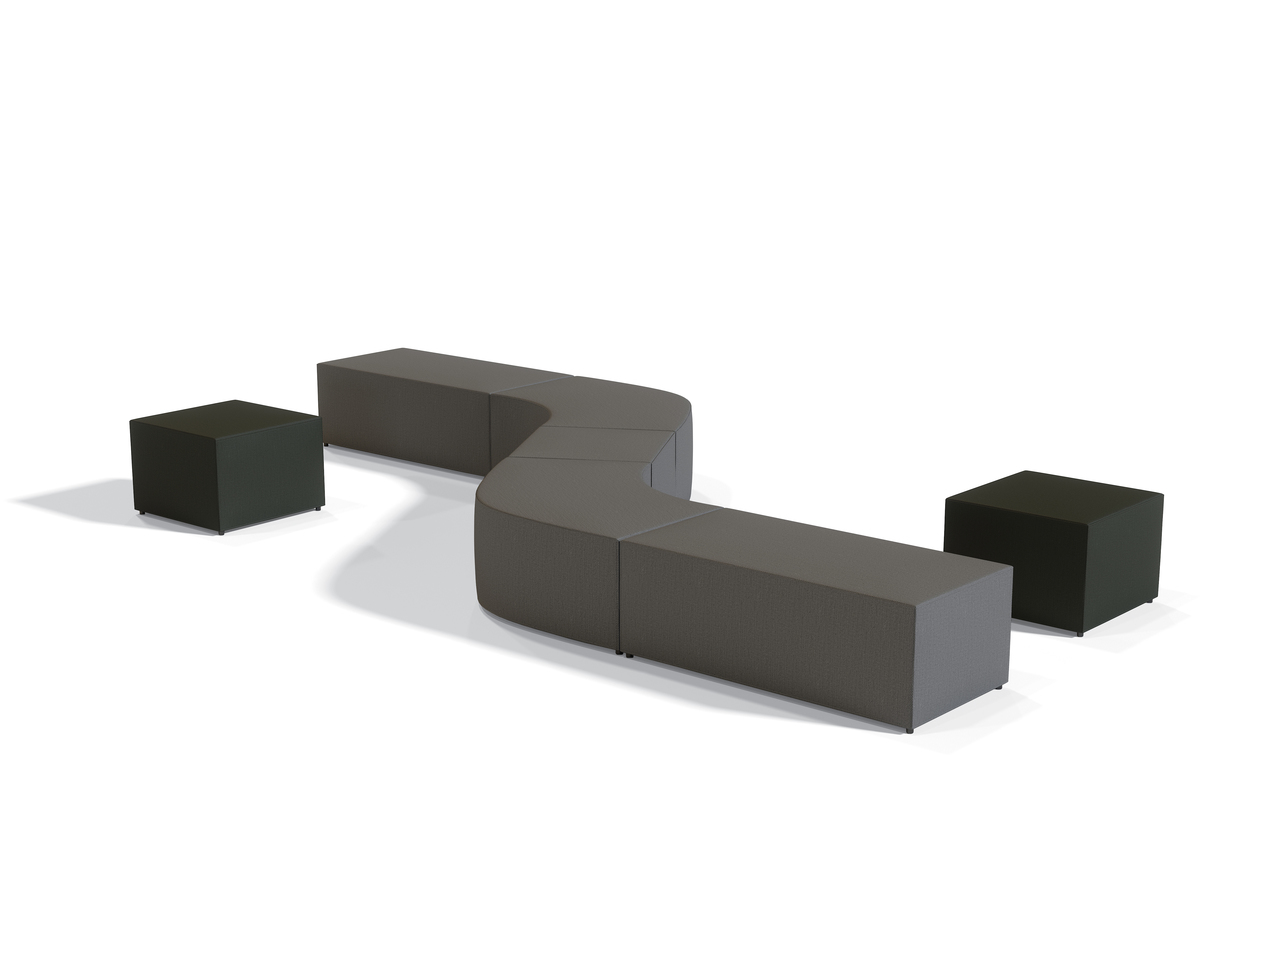 offices to go modular ottoman layout for reception area